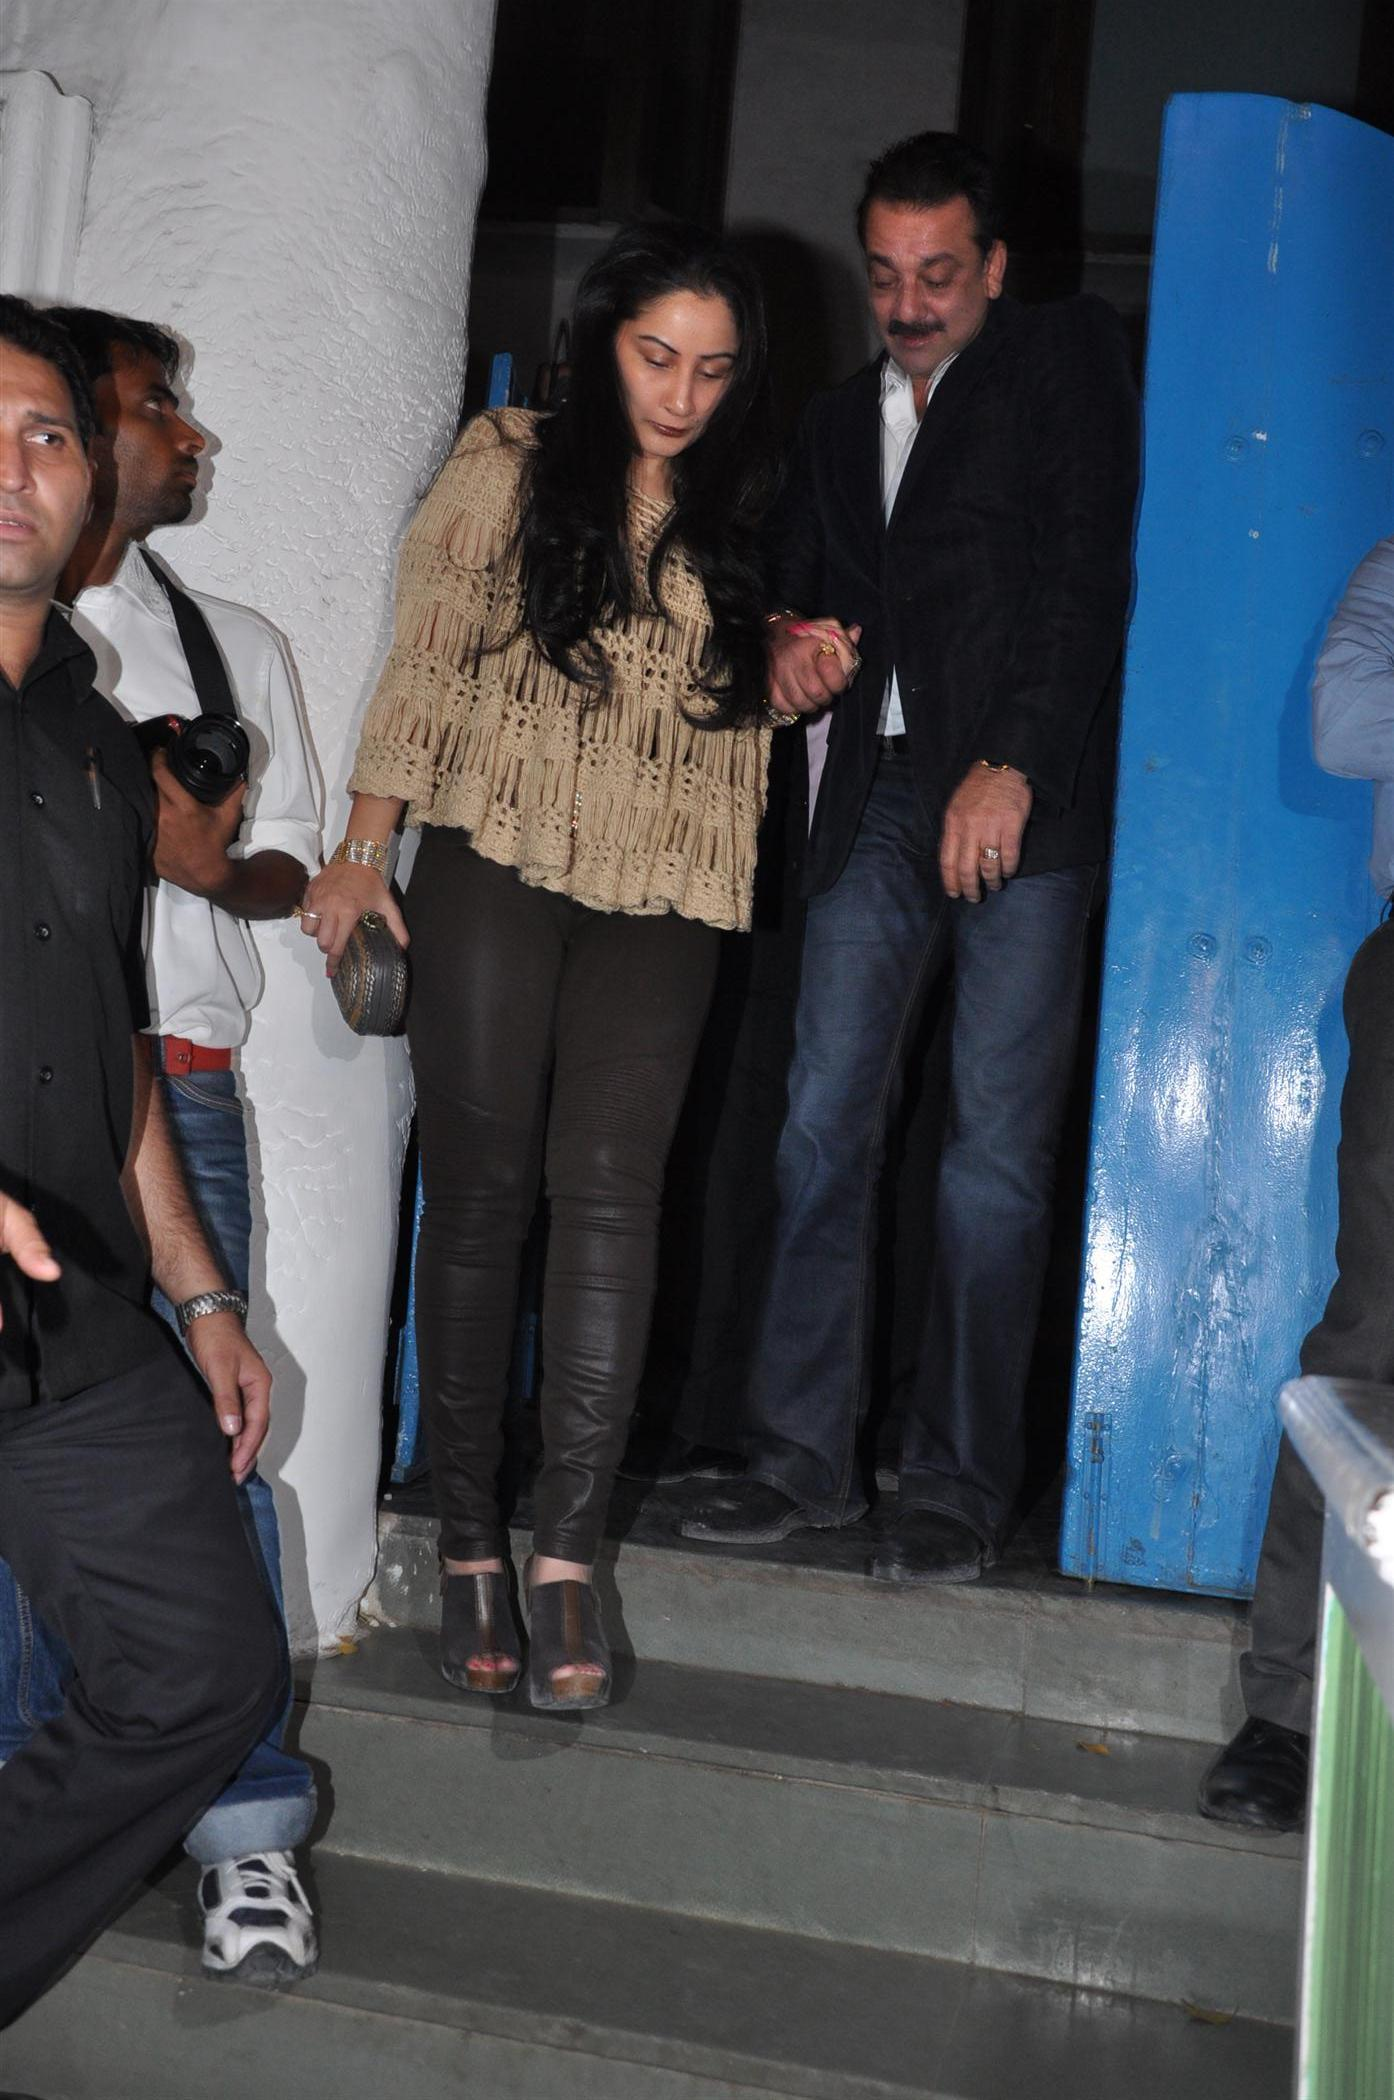 Sanjay Dutt With Manyata Dutt At Wedding Reception Party Of Producer Bunty Walia In Mumbai 2 Rediff Bollywood Photos On Rediff Pages The film producer threw a bash after getting hitched to vanessa parmar. sanjay dutt with manyata dutt at wedding reception party of producer bunty walia in mumbai 2 rediff bollywood photos on rediff pages